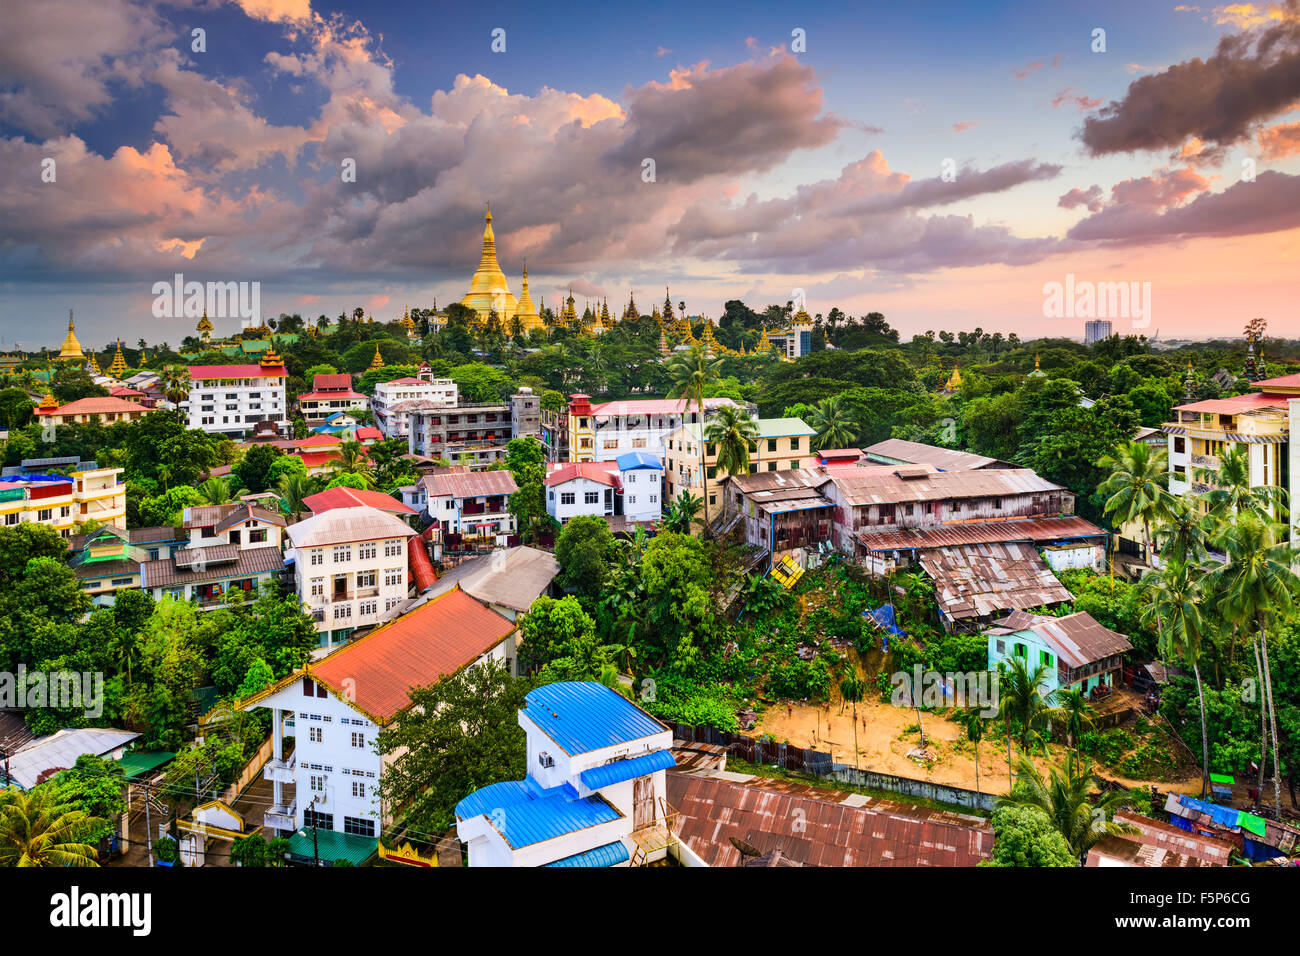 Yangon, Myanmar city skyline. - Stock Image